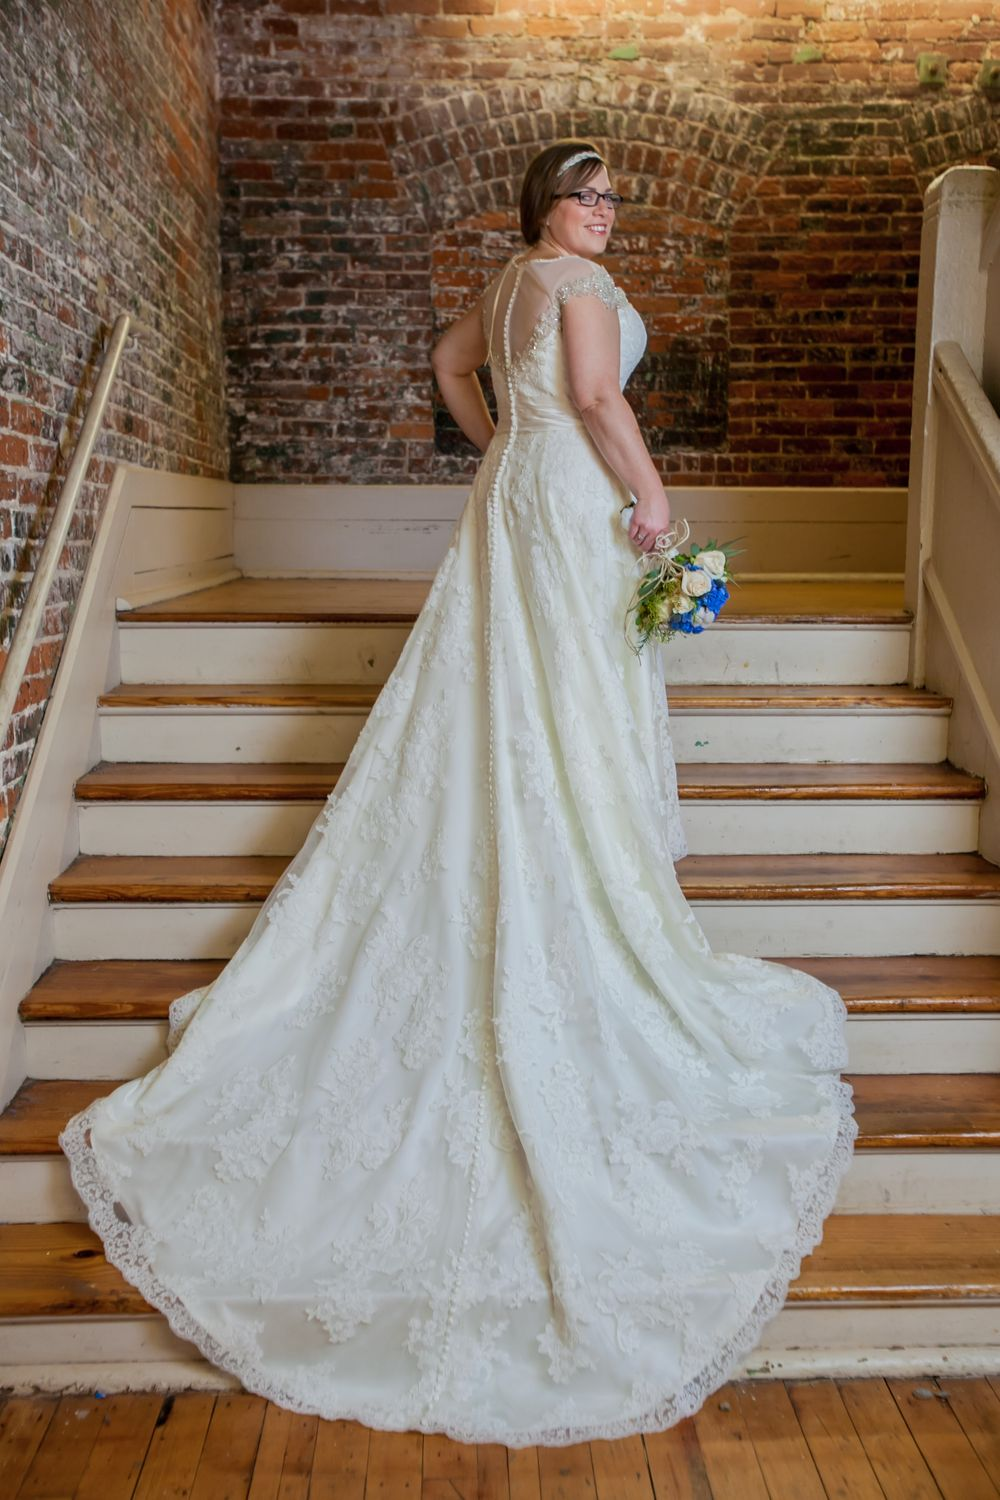 Brooke's bridal portrait on the steps before her wedding at the South Carolina State Museum in Columbia, SC